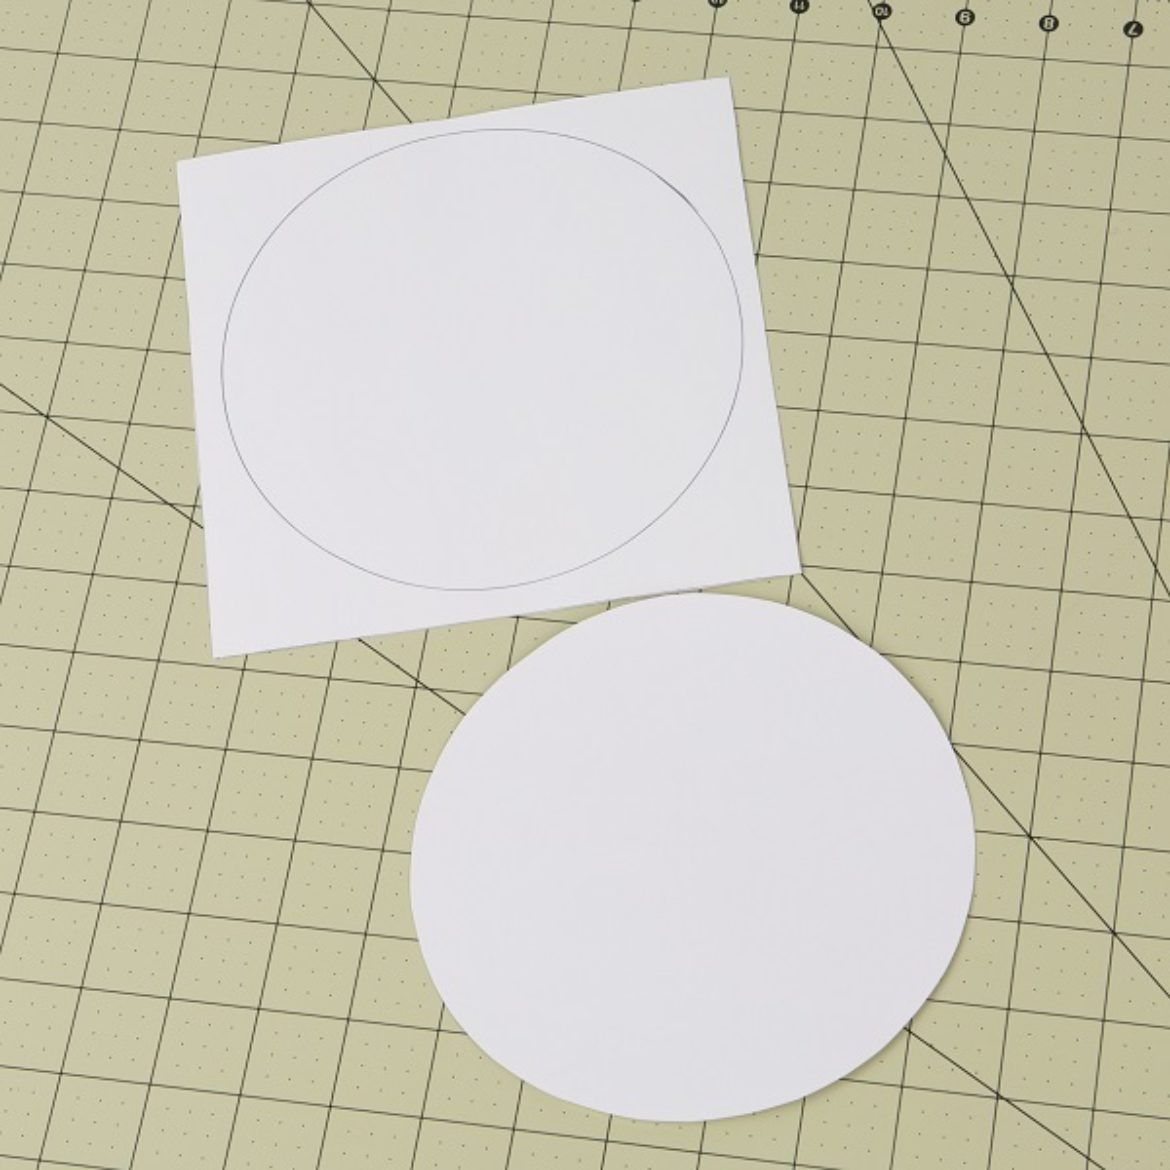 Two circles drawn and cut out of pieces of cardstock